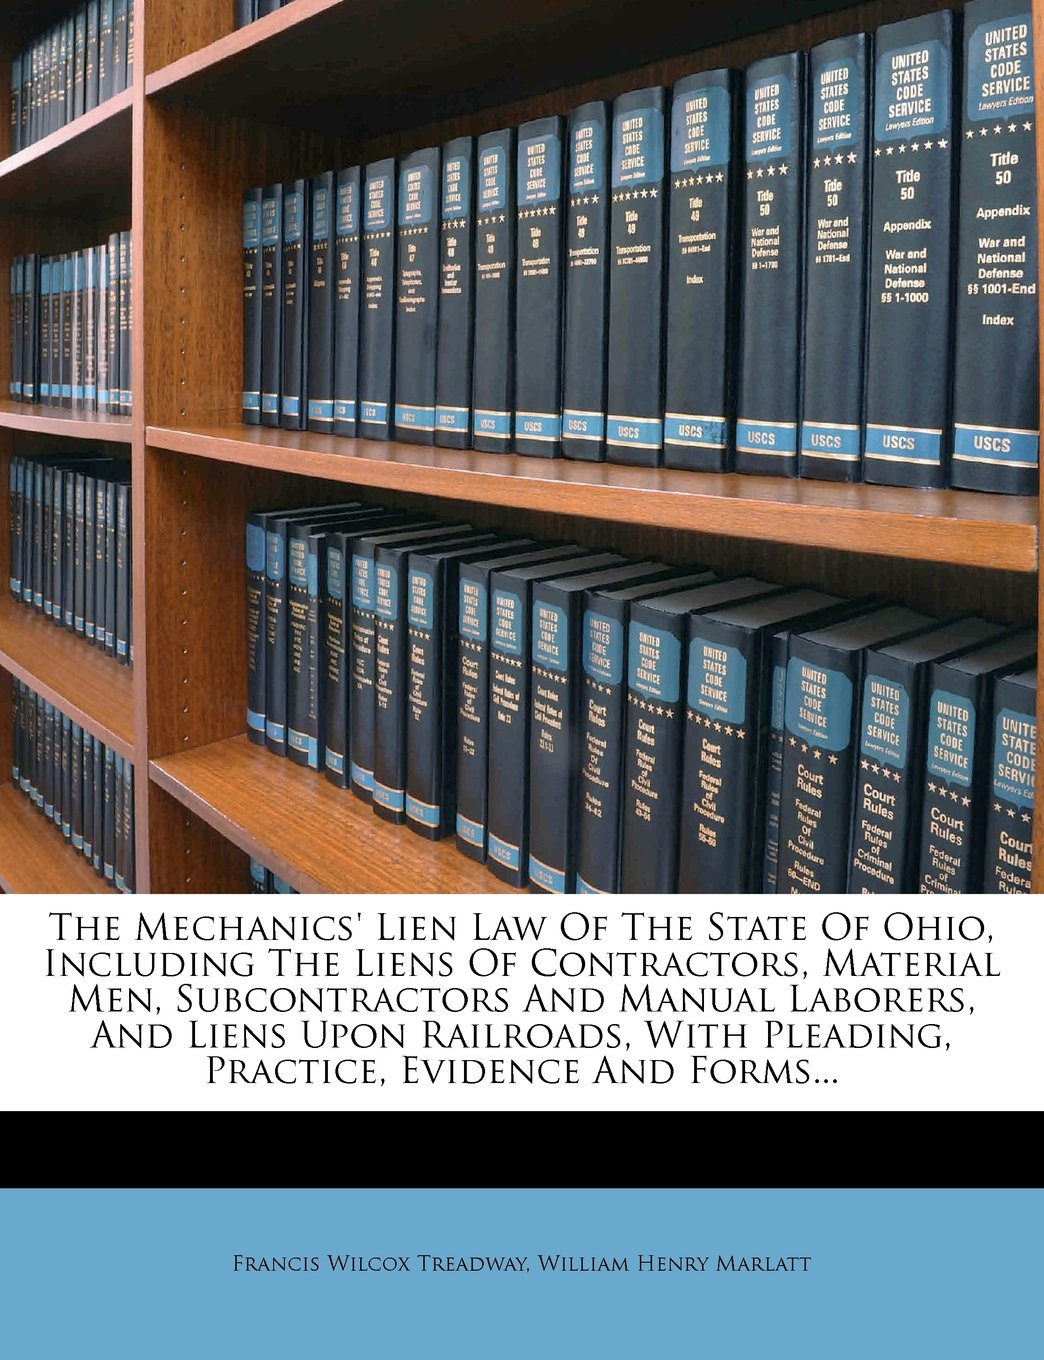 The Mechanics' Lien Law Of The State Of Ohio, Including The Liens Of Contractors, Material Men, Subcontractors And Manual Laborers, And Liens Upon ... Pleading, Practice, Evidence And Forms...